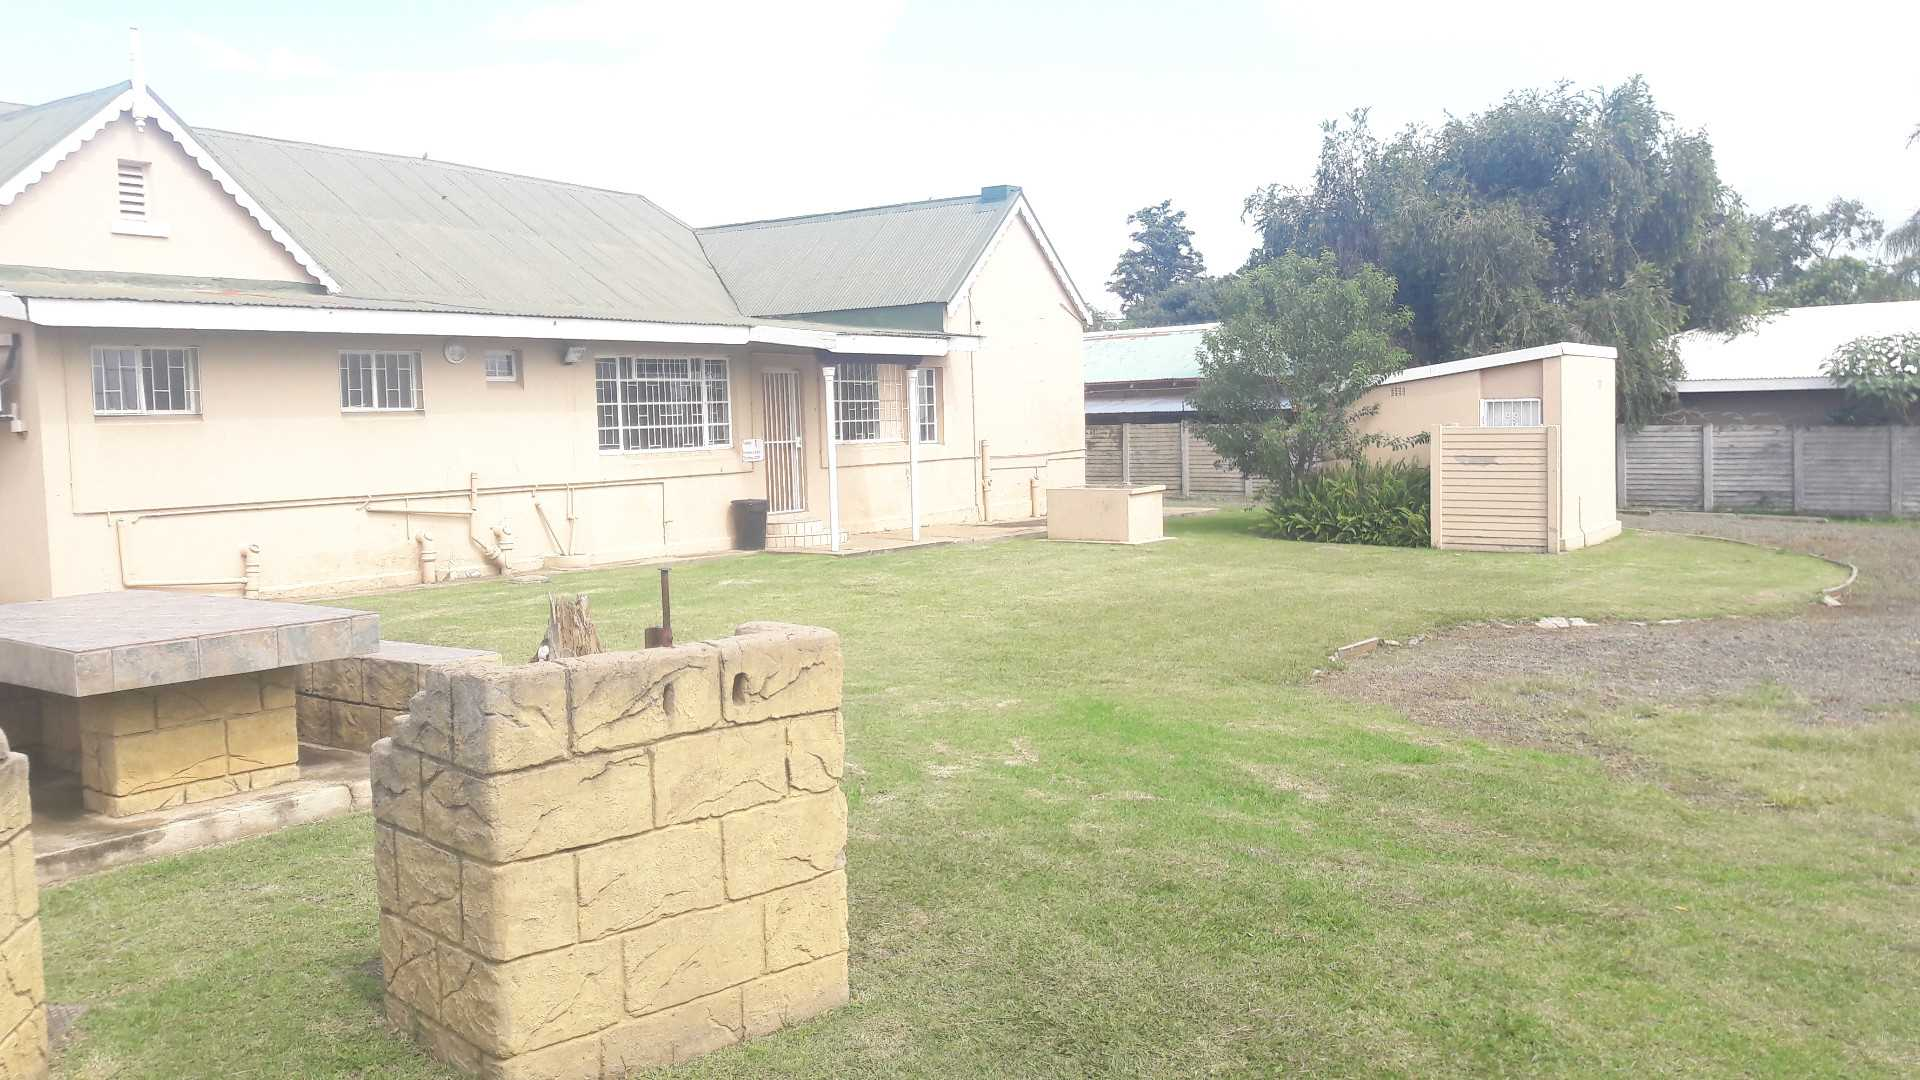 Back view of outside ablutions and braai area